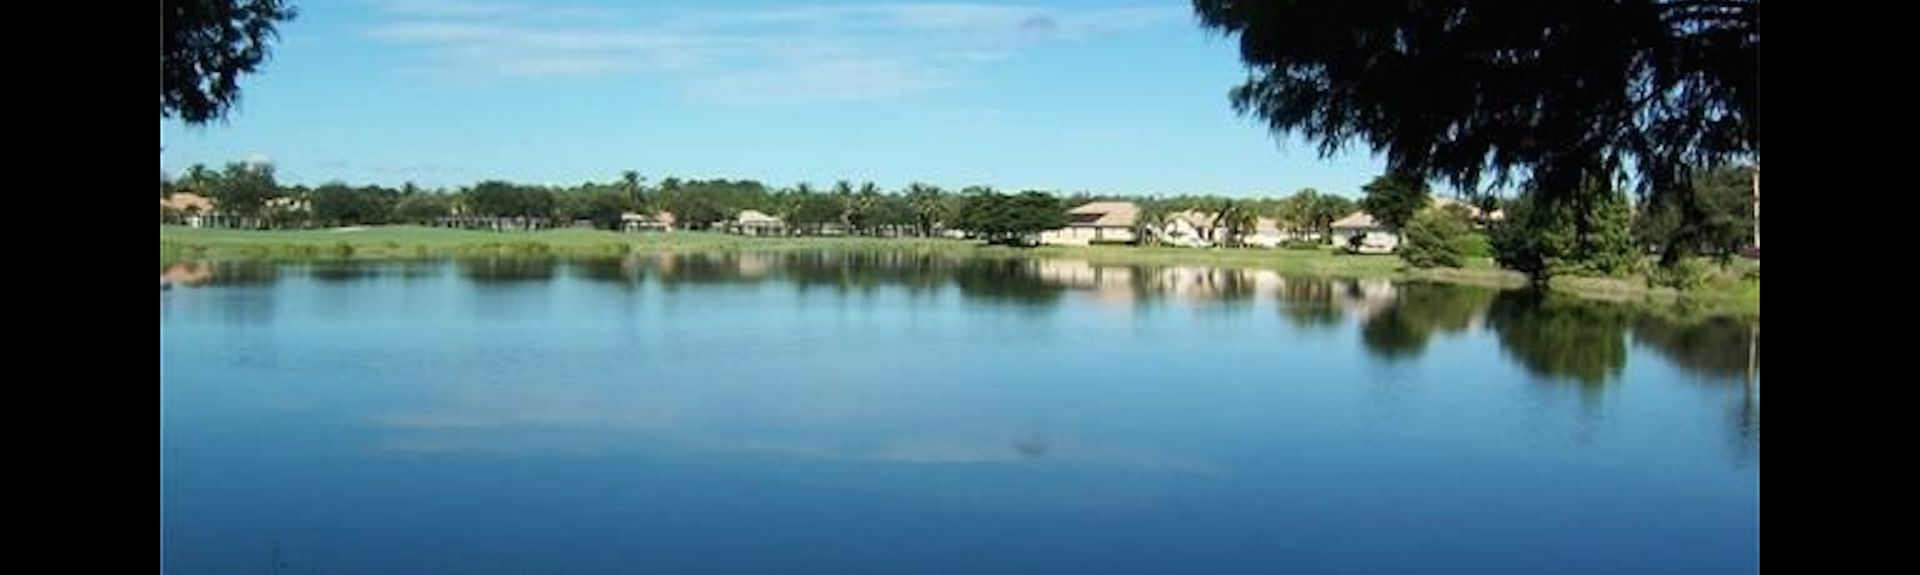 Legends Golf & Country Club (Fort Myers, Florida, United States)